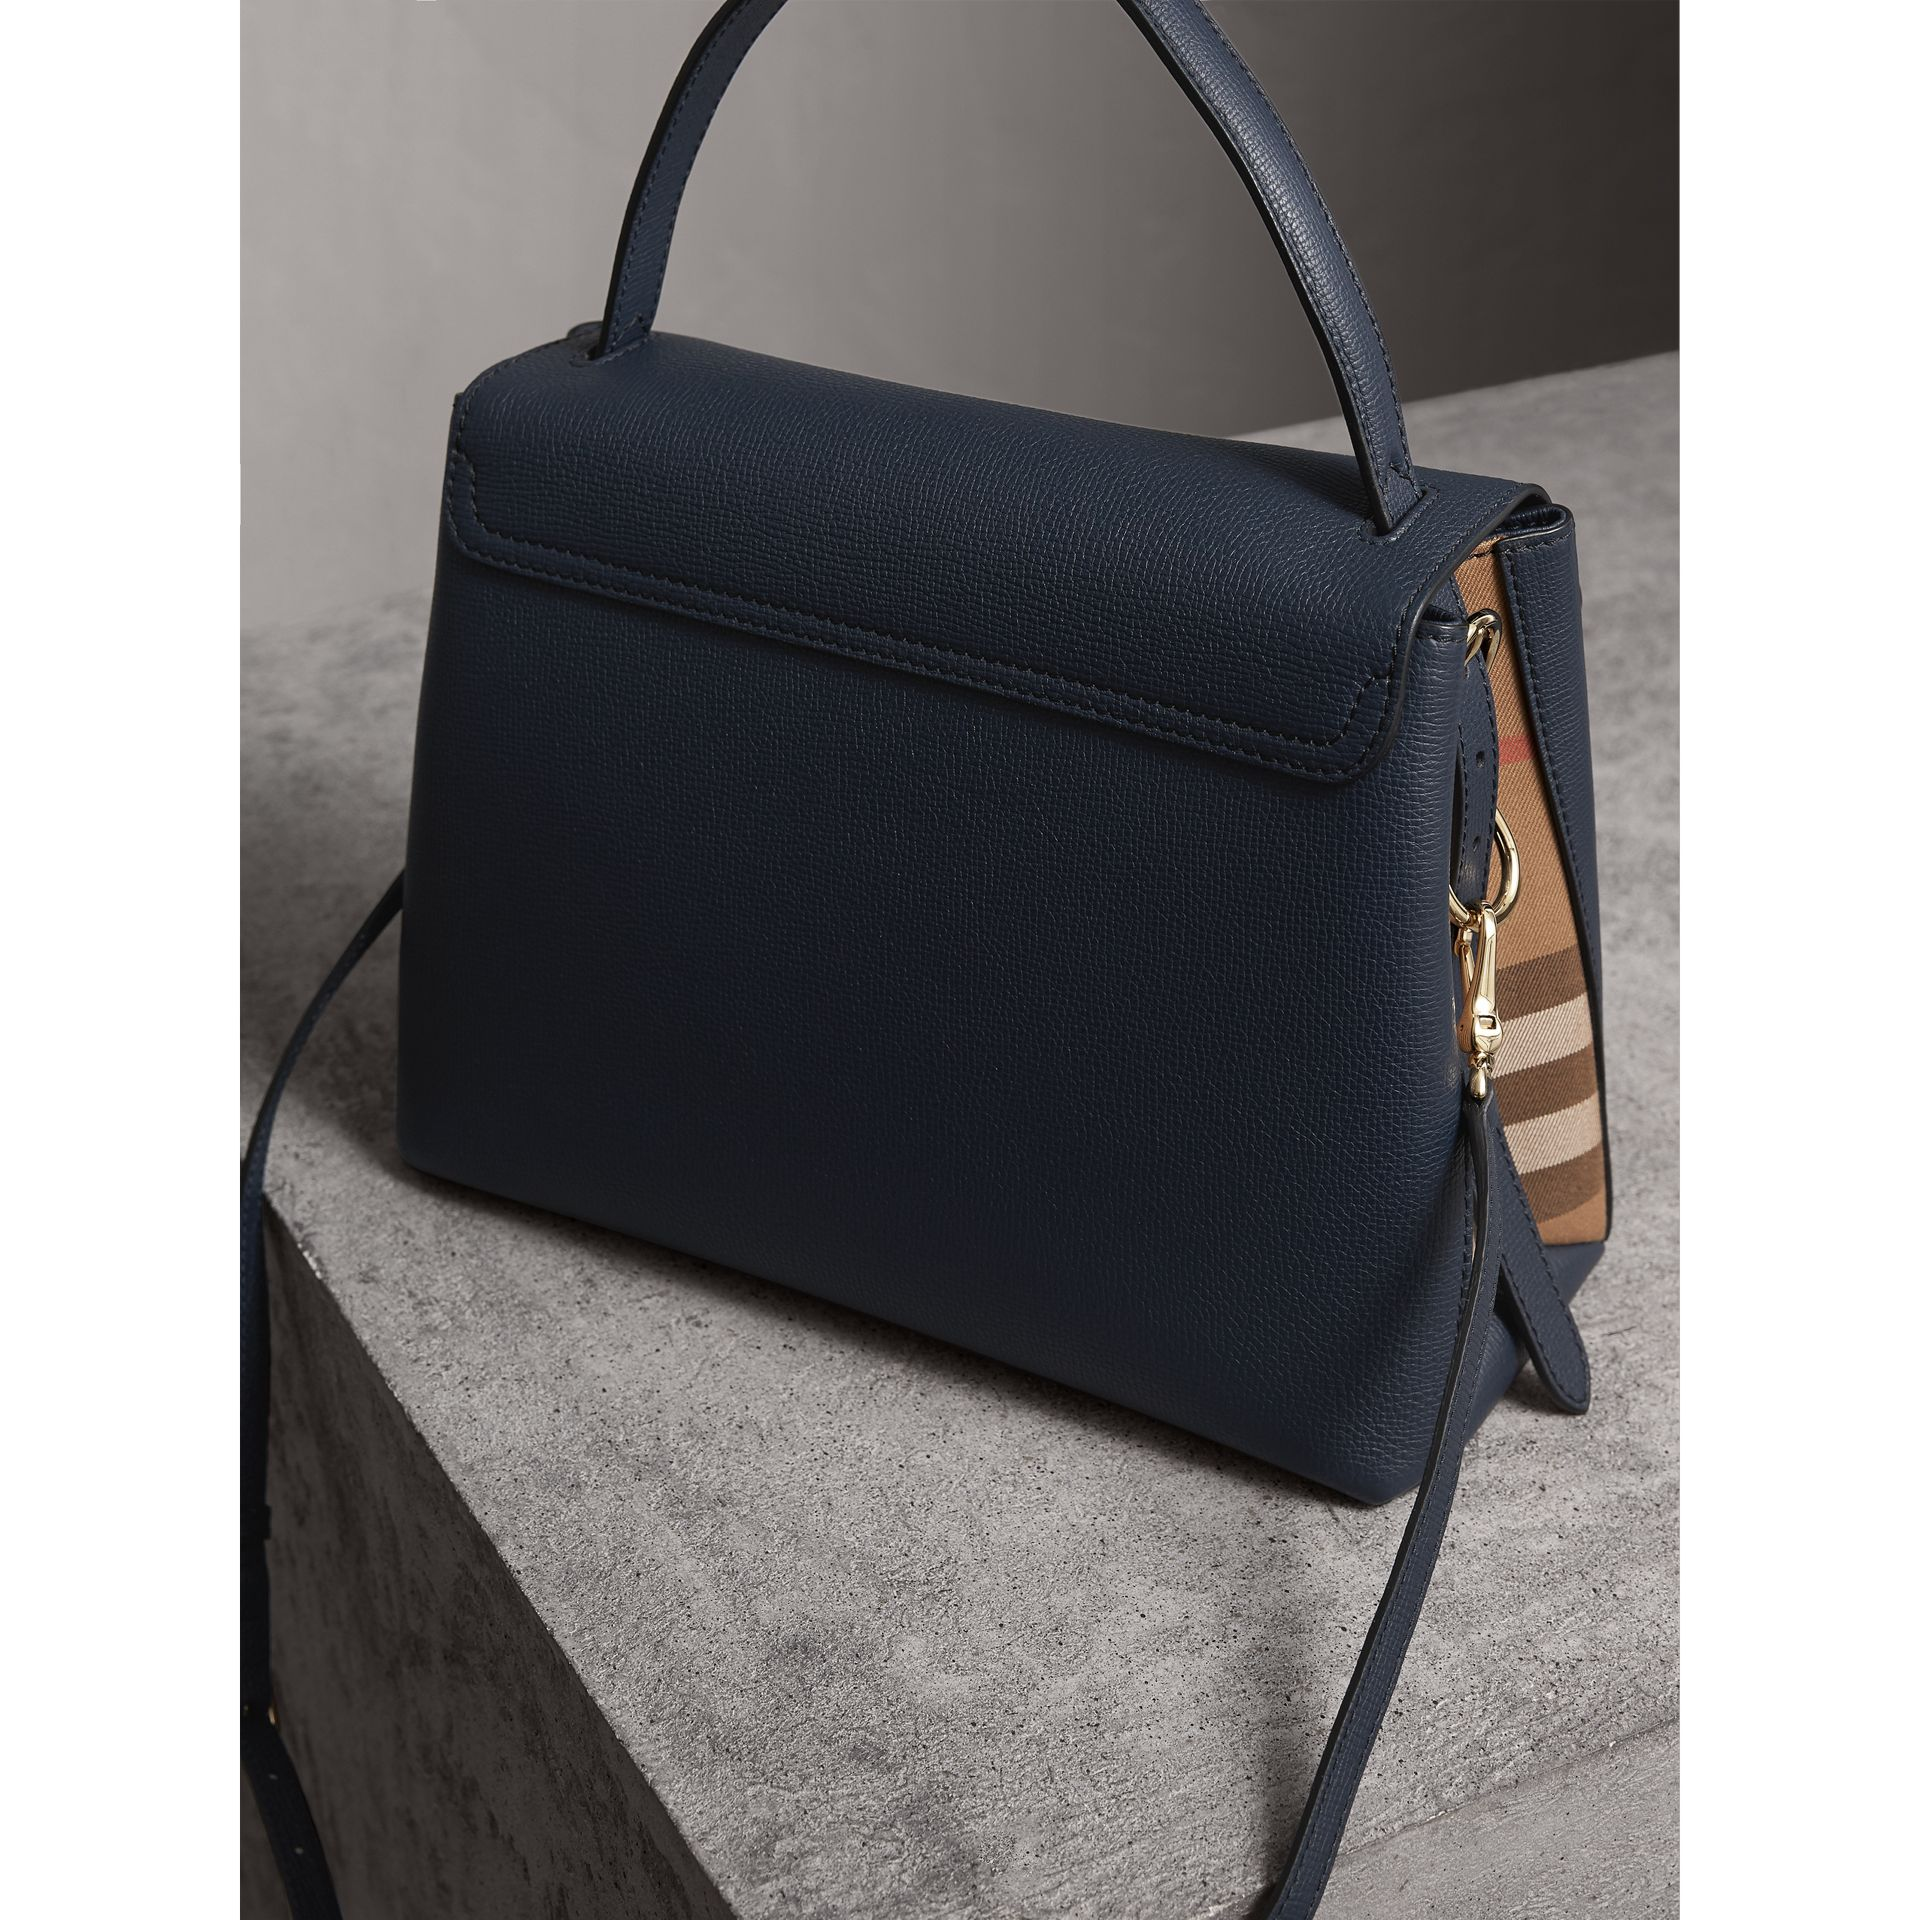 Medium Grainy Leather and House Check Tote Bag in Ink Blue - Women | Burberry United Kingdom - gallery image 4